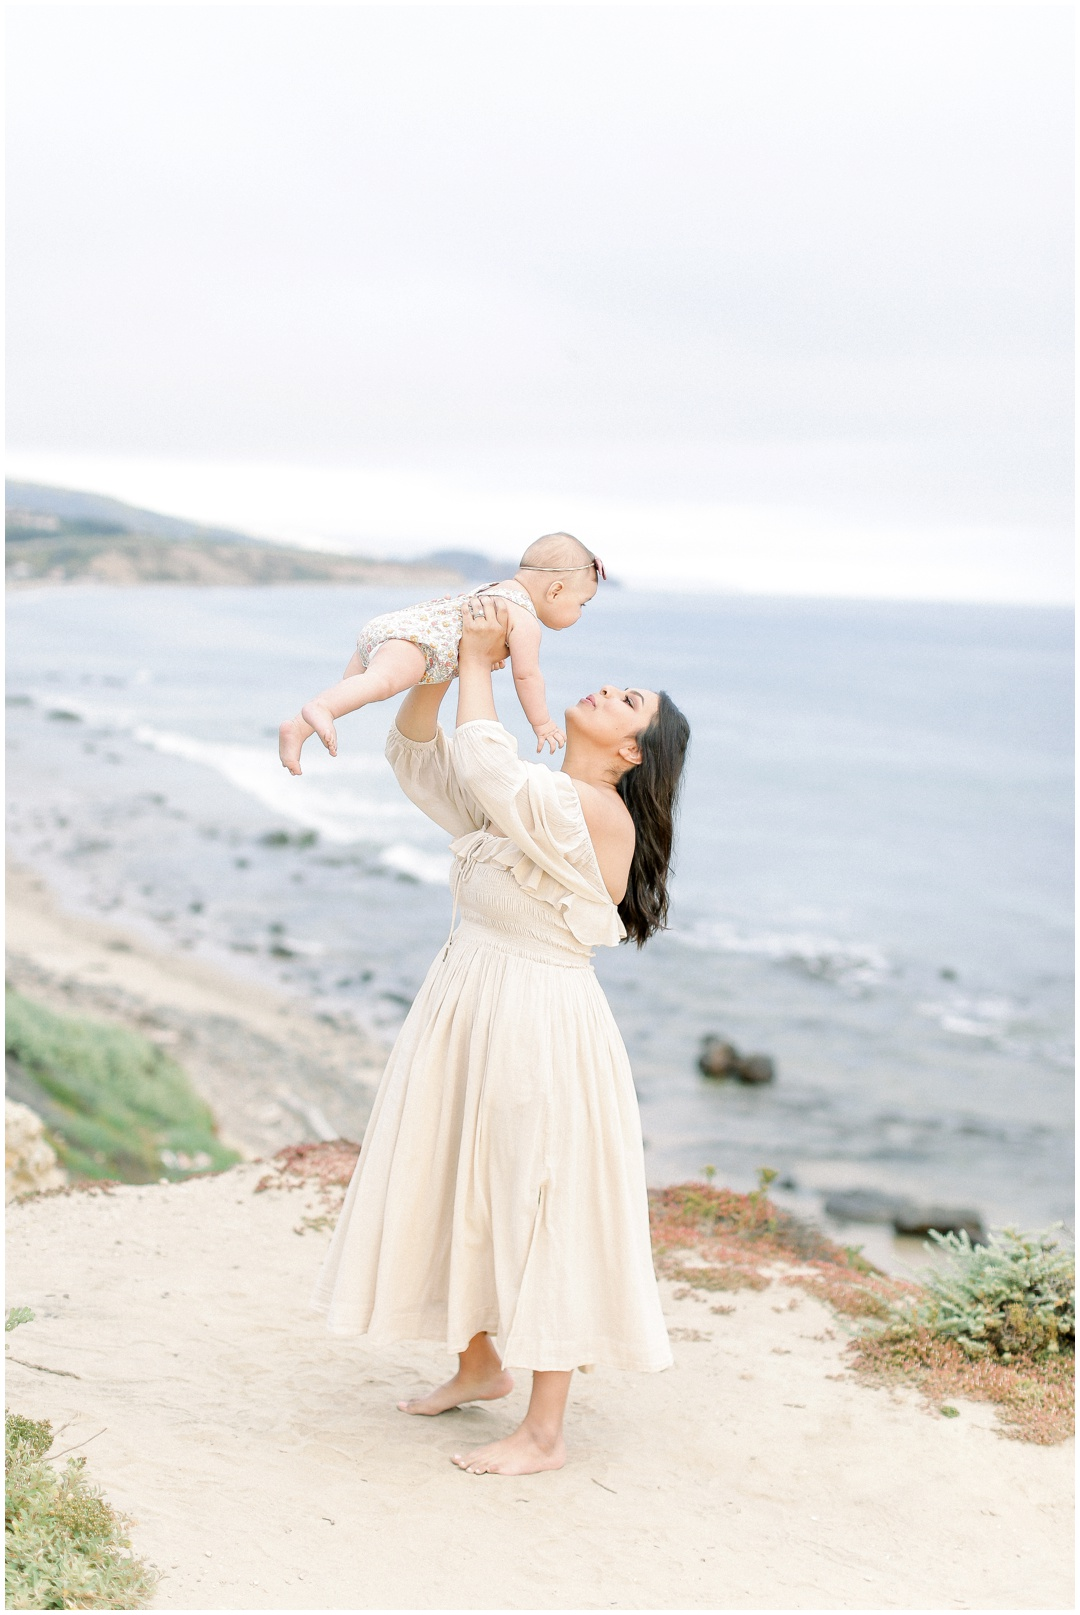 Newport_Beach_Newborn_Light_Airy_Natural_Photographer_Newport_Beach_Photographer_Orange_County_Family_Photographer_Cori_Kleckner_Photography_Huntington_Beach_Photographer_Family_OC_Newborn_Natalie_Nunez_Thomas_Nunez_Natalie_Roca_Rosh_Nunez_Family_3550.jpg